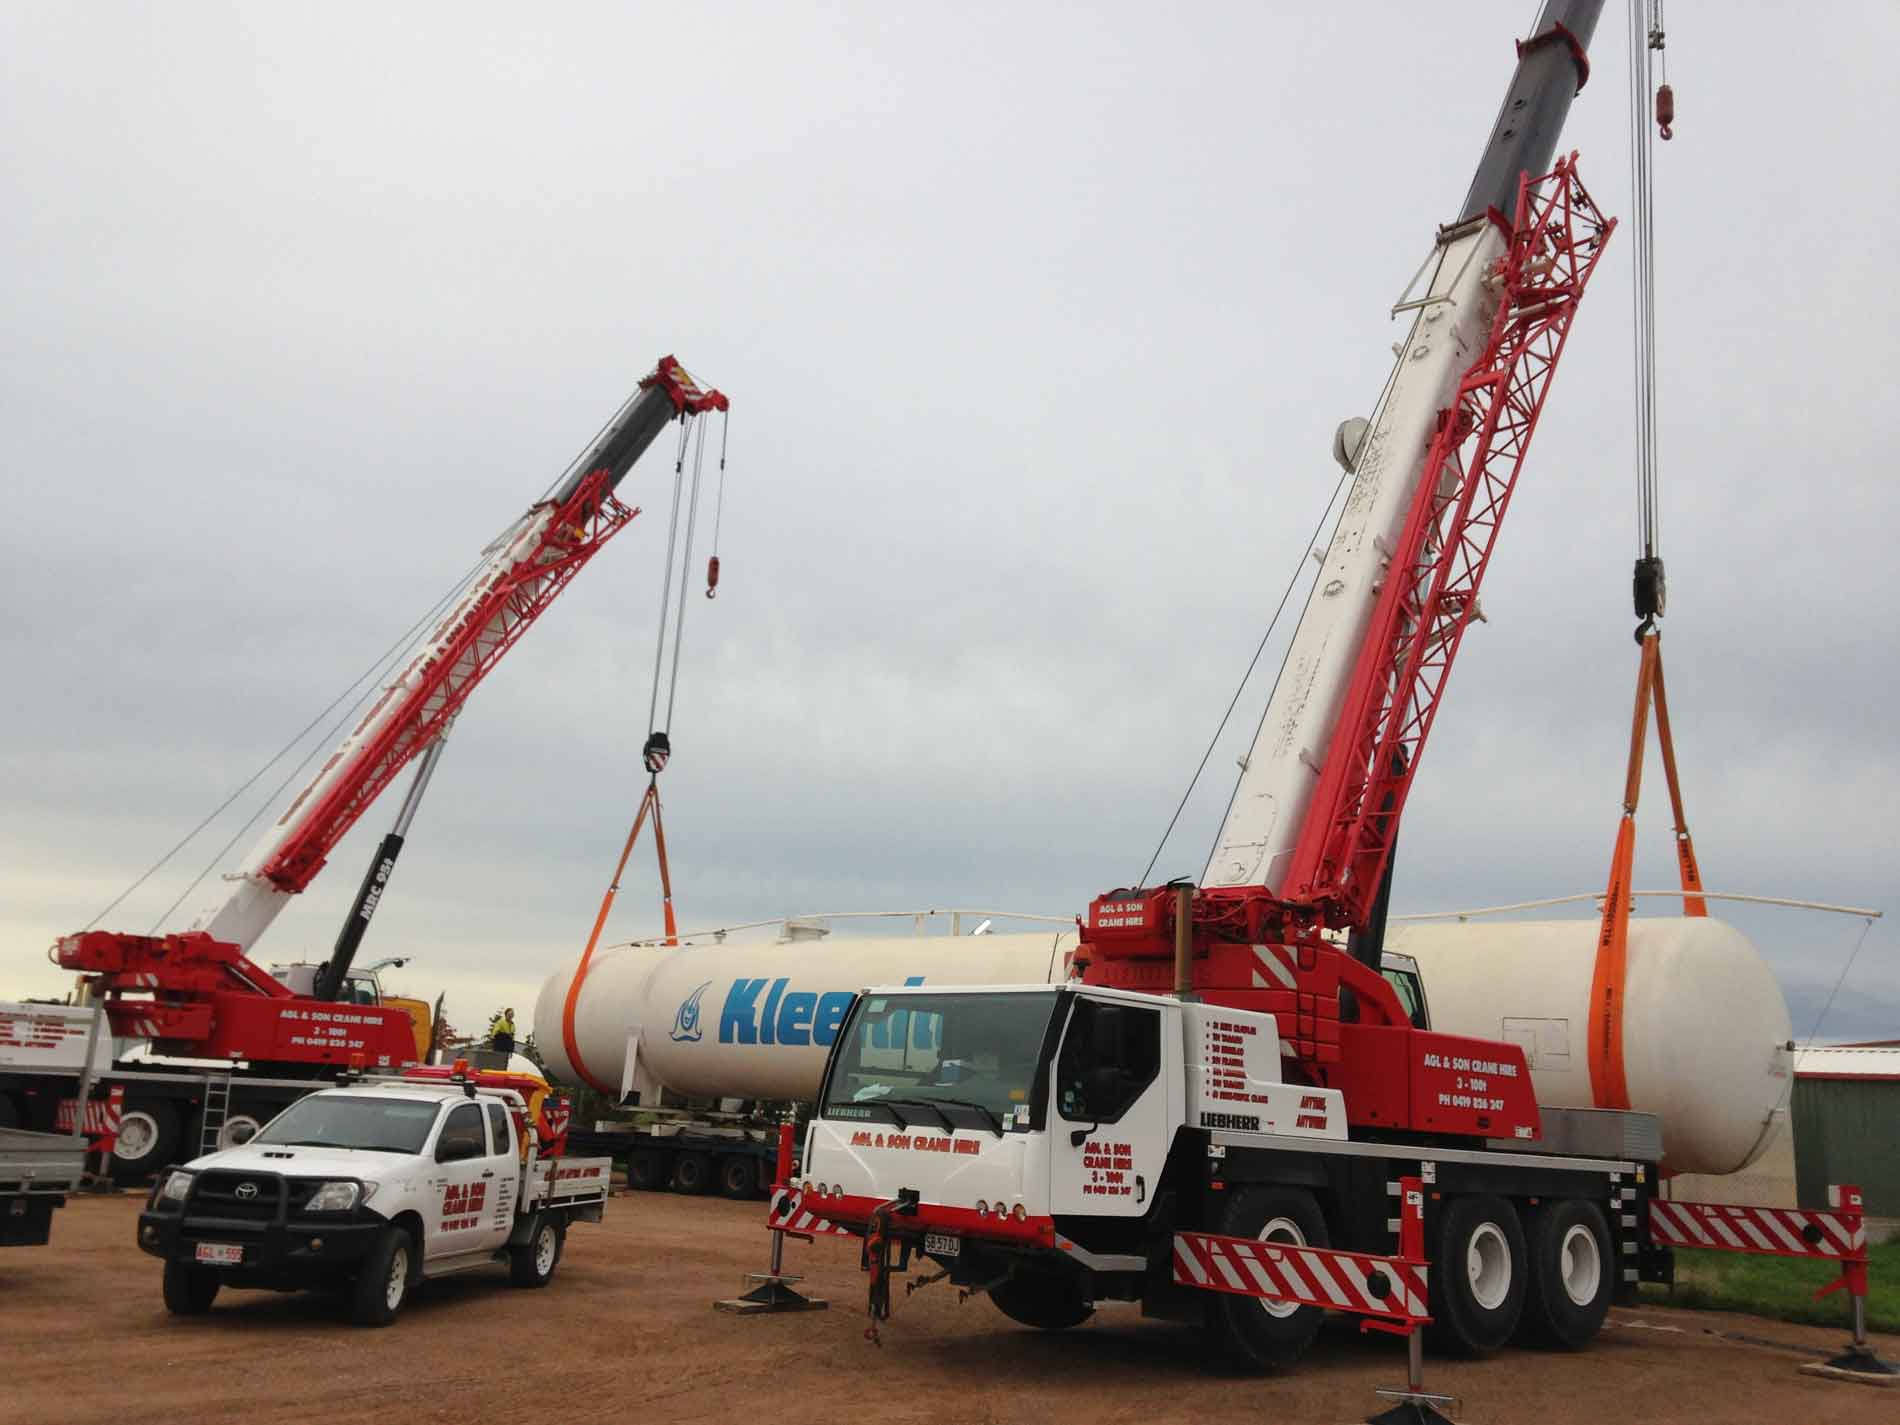 two red cranes lifting giant pipe